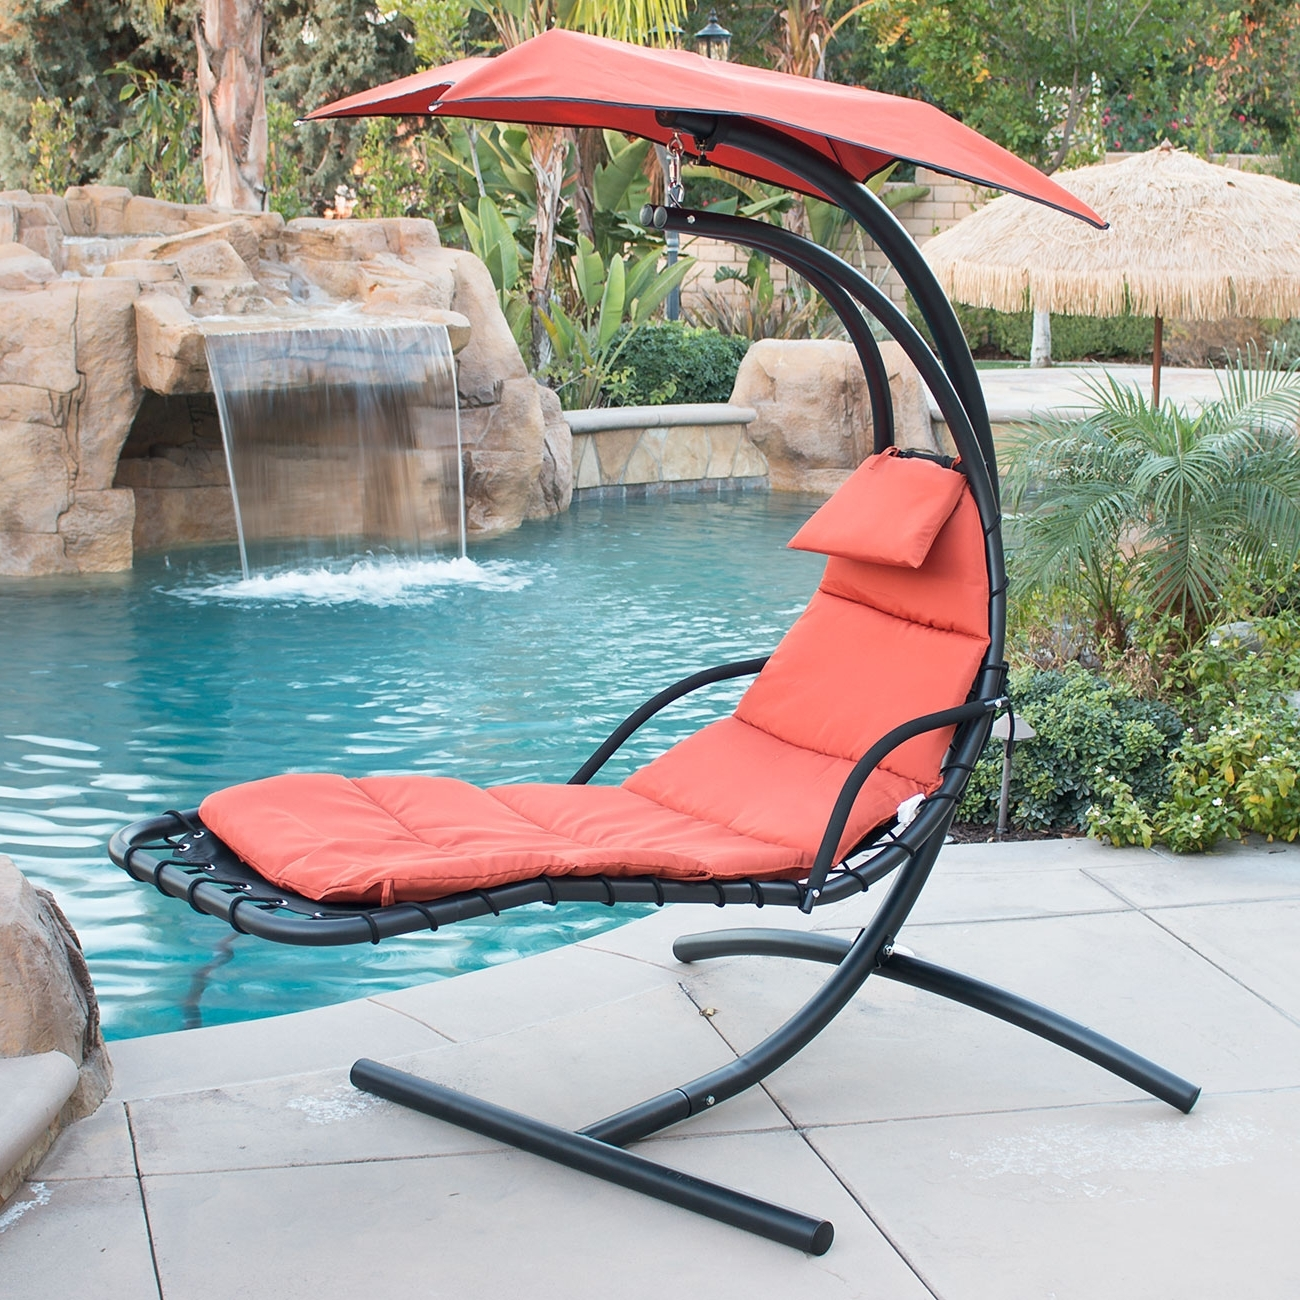 Chaise Lounge Swing Chairs Regarding Well Liked Hanging Chaise Lounger Chair Arc Stand Air Porch Swing Hammock (View 3 of 15)